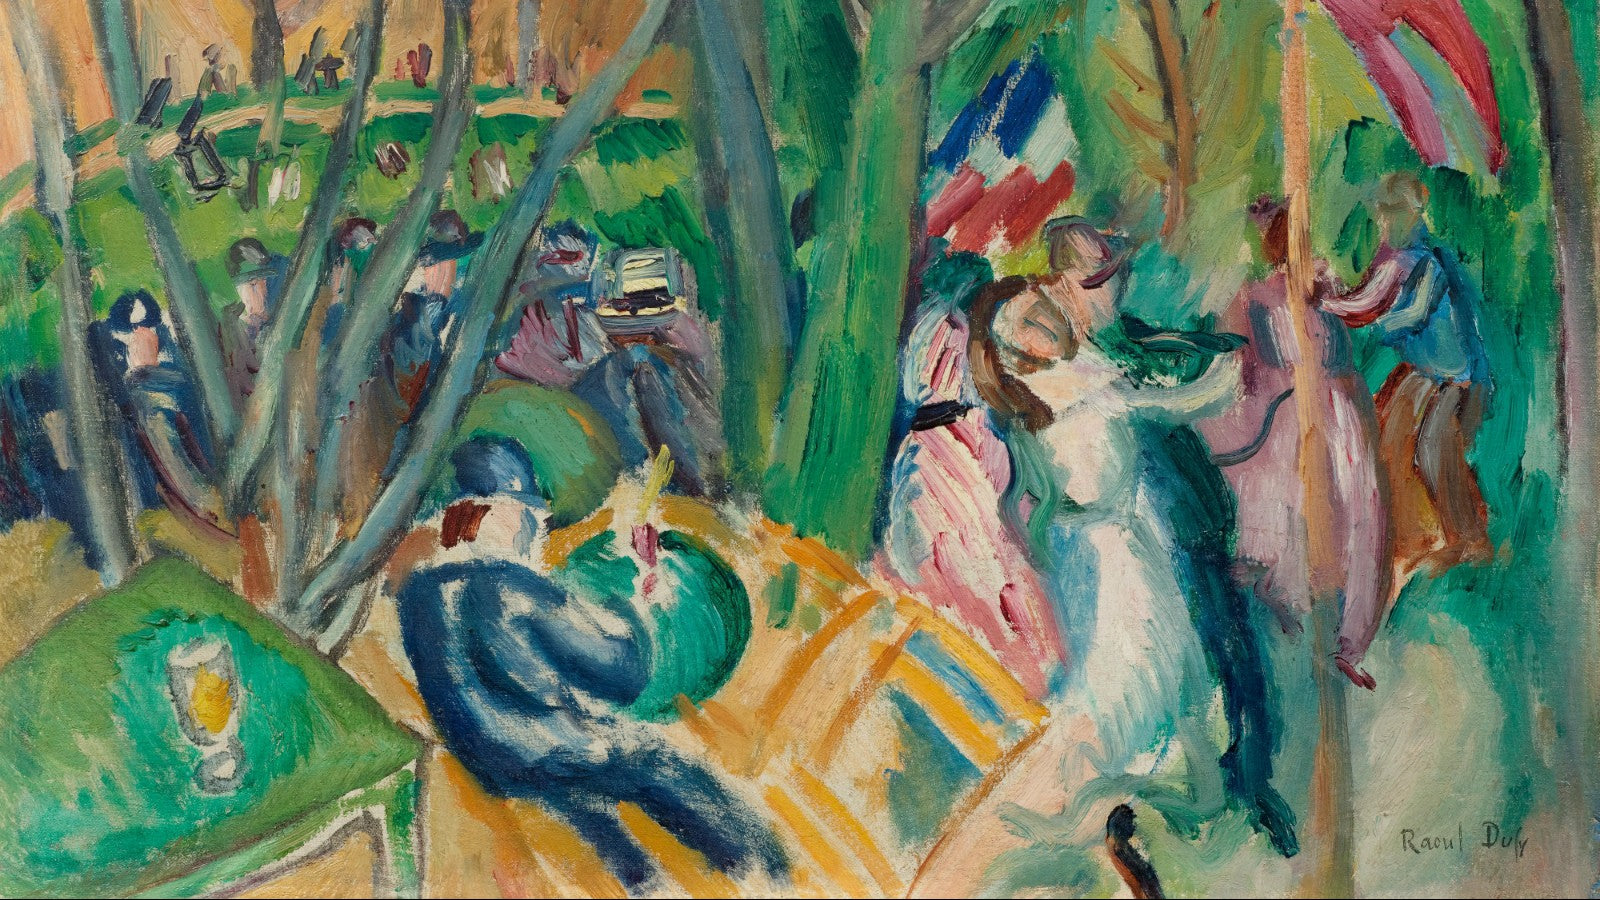 Le Bal Populaire (The Local Dance) painting by Raoul Dufy (1906)